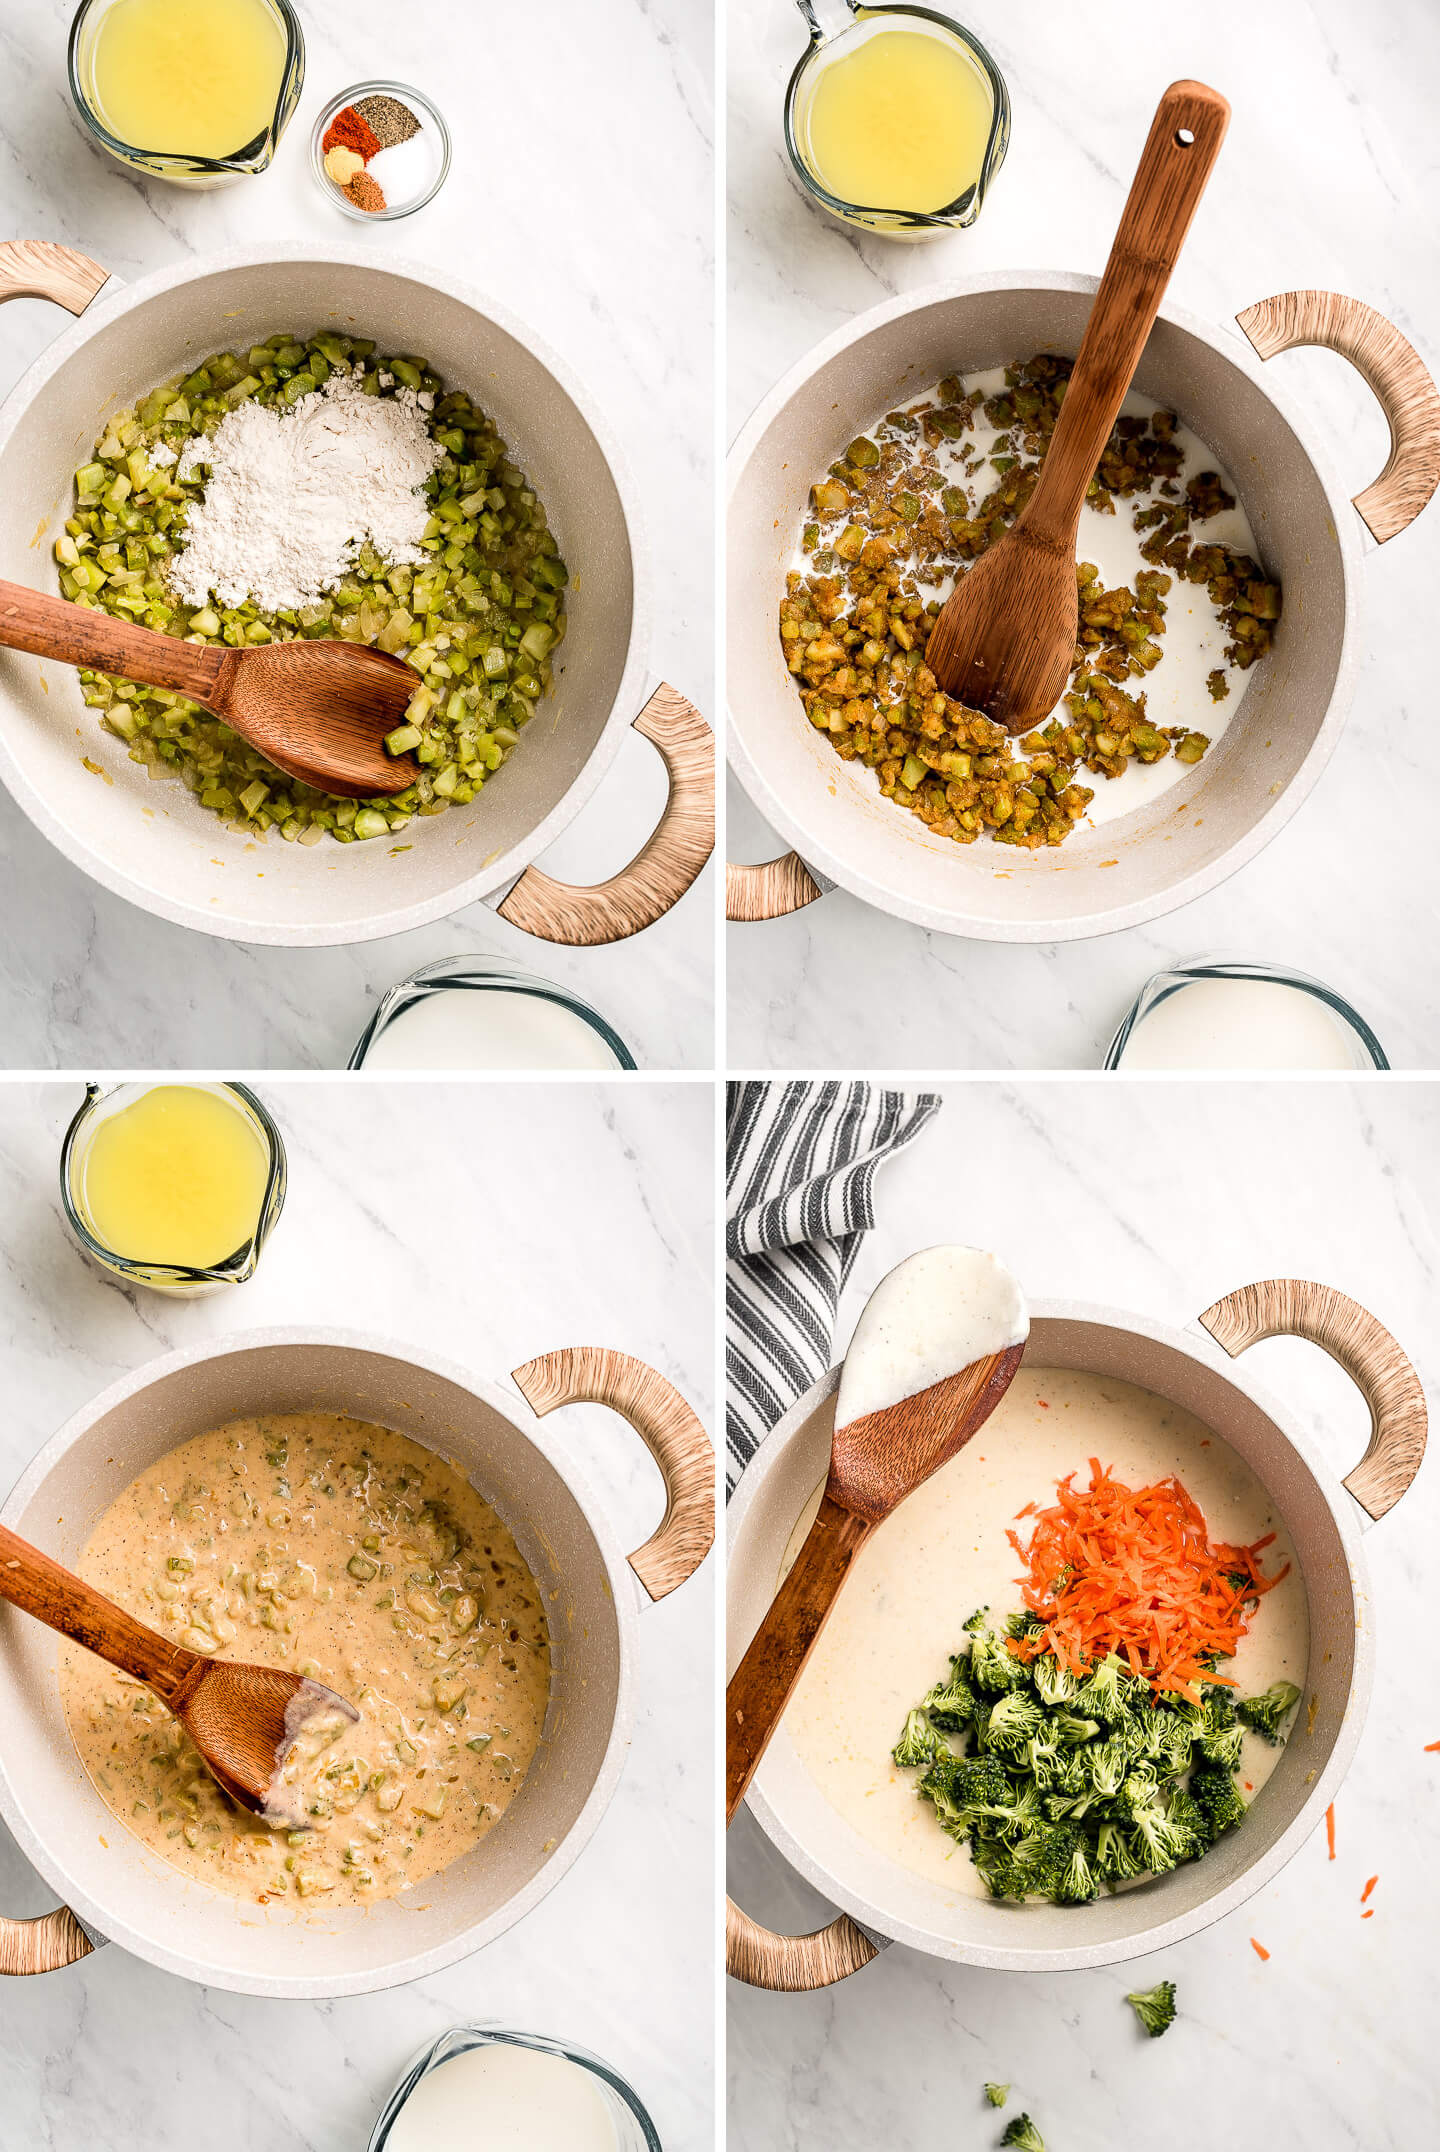 Process shots of making creamy vegetable soup.